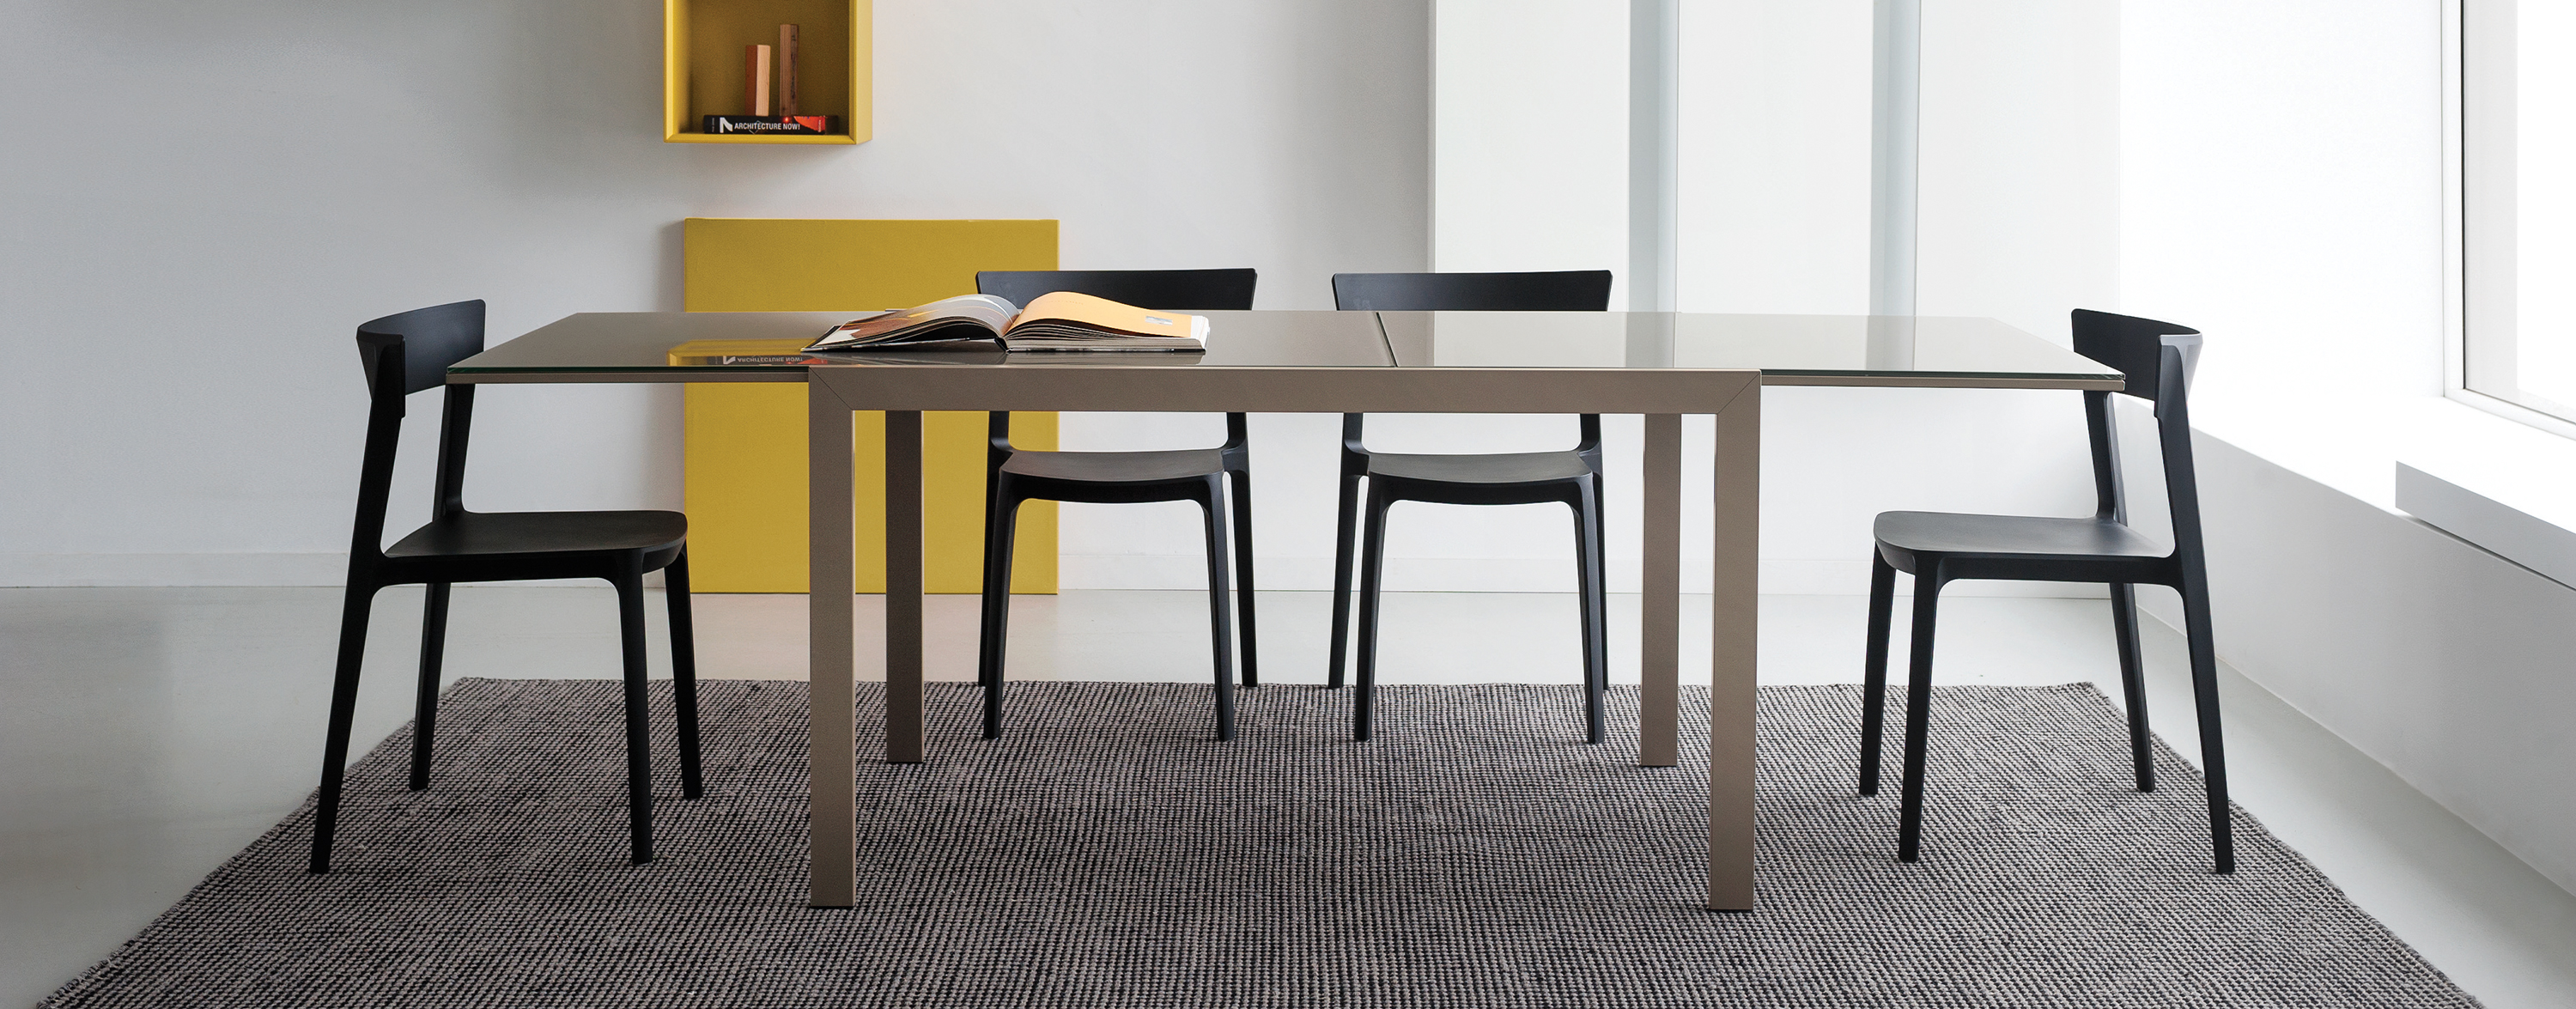 Skin chair hip furniture for Calligaris key table